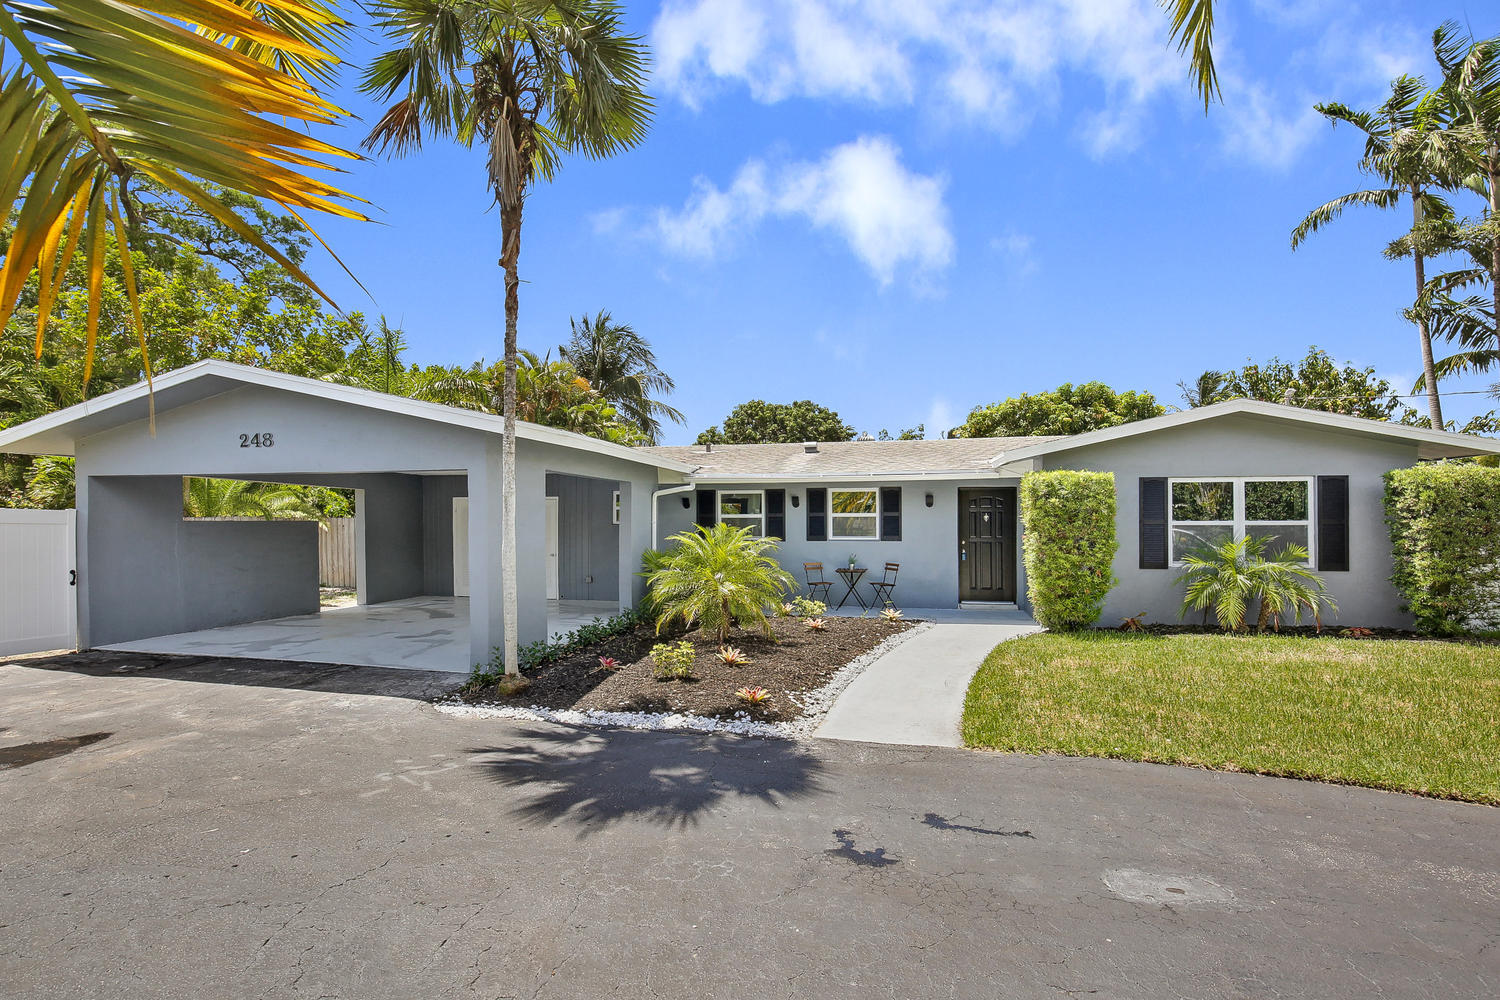 Home for sale in Almar Estates Wilton Manors Florida